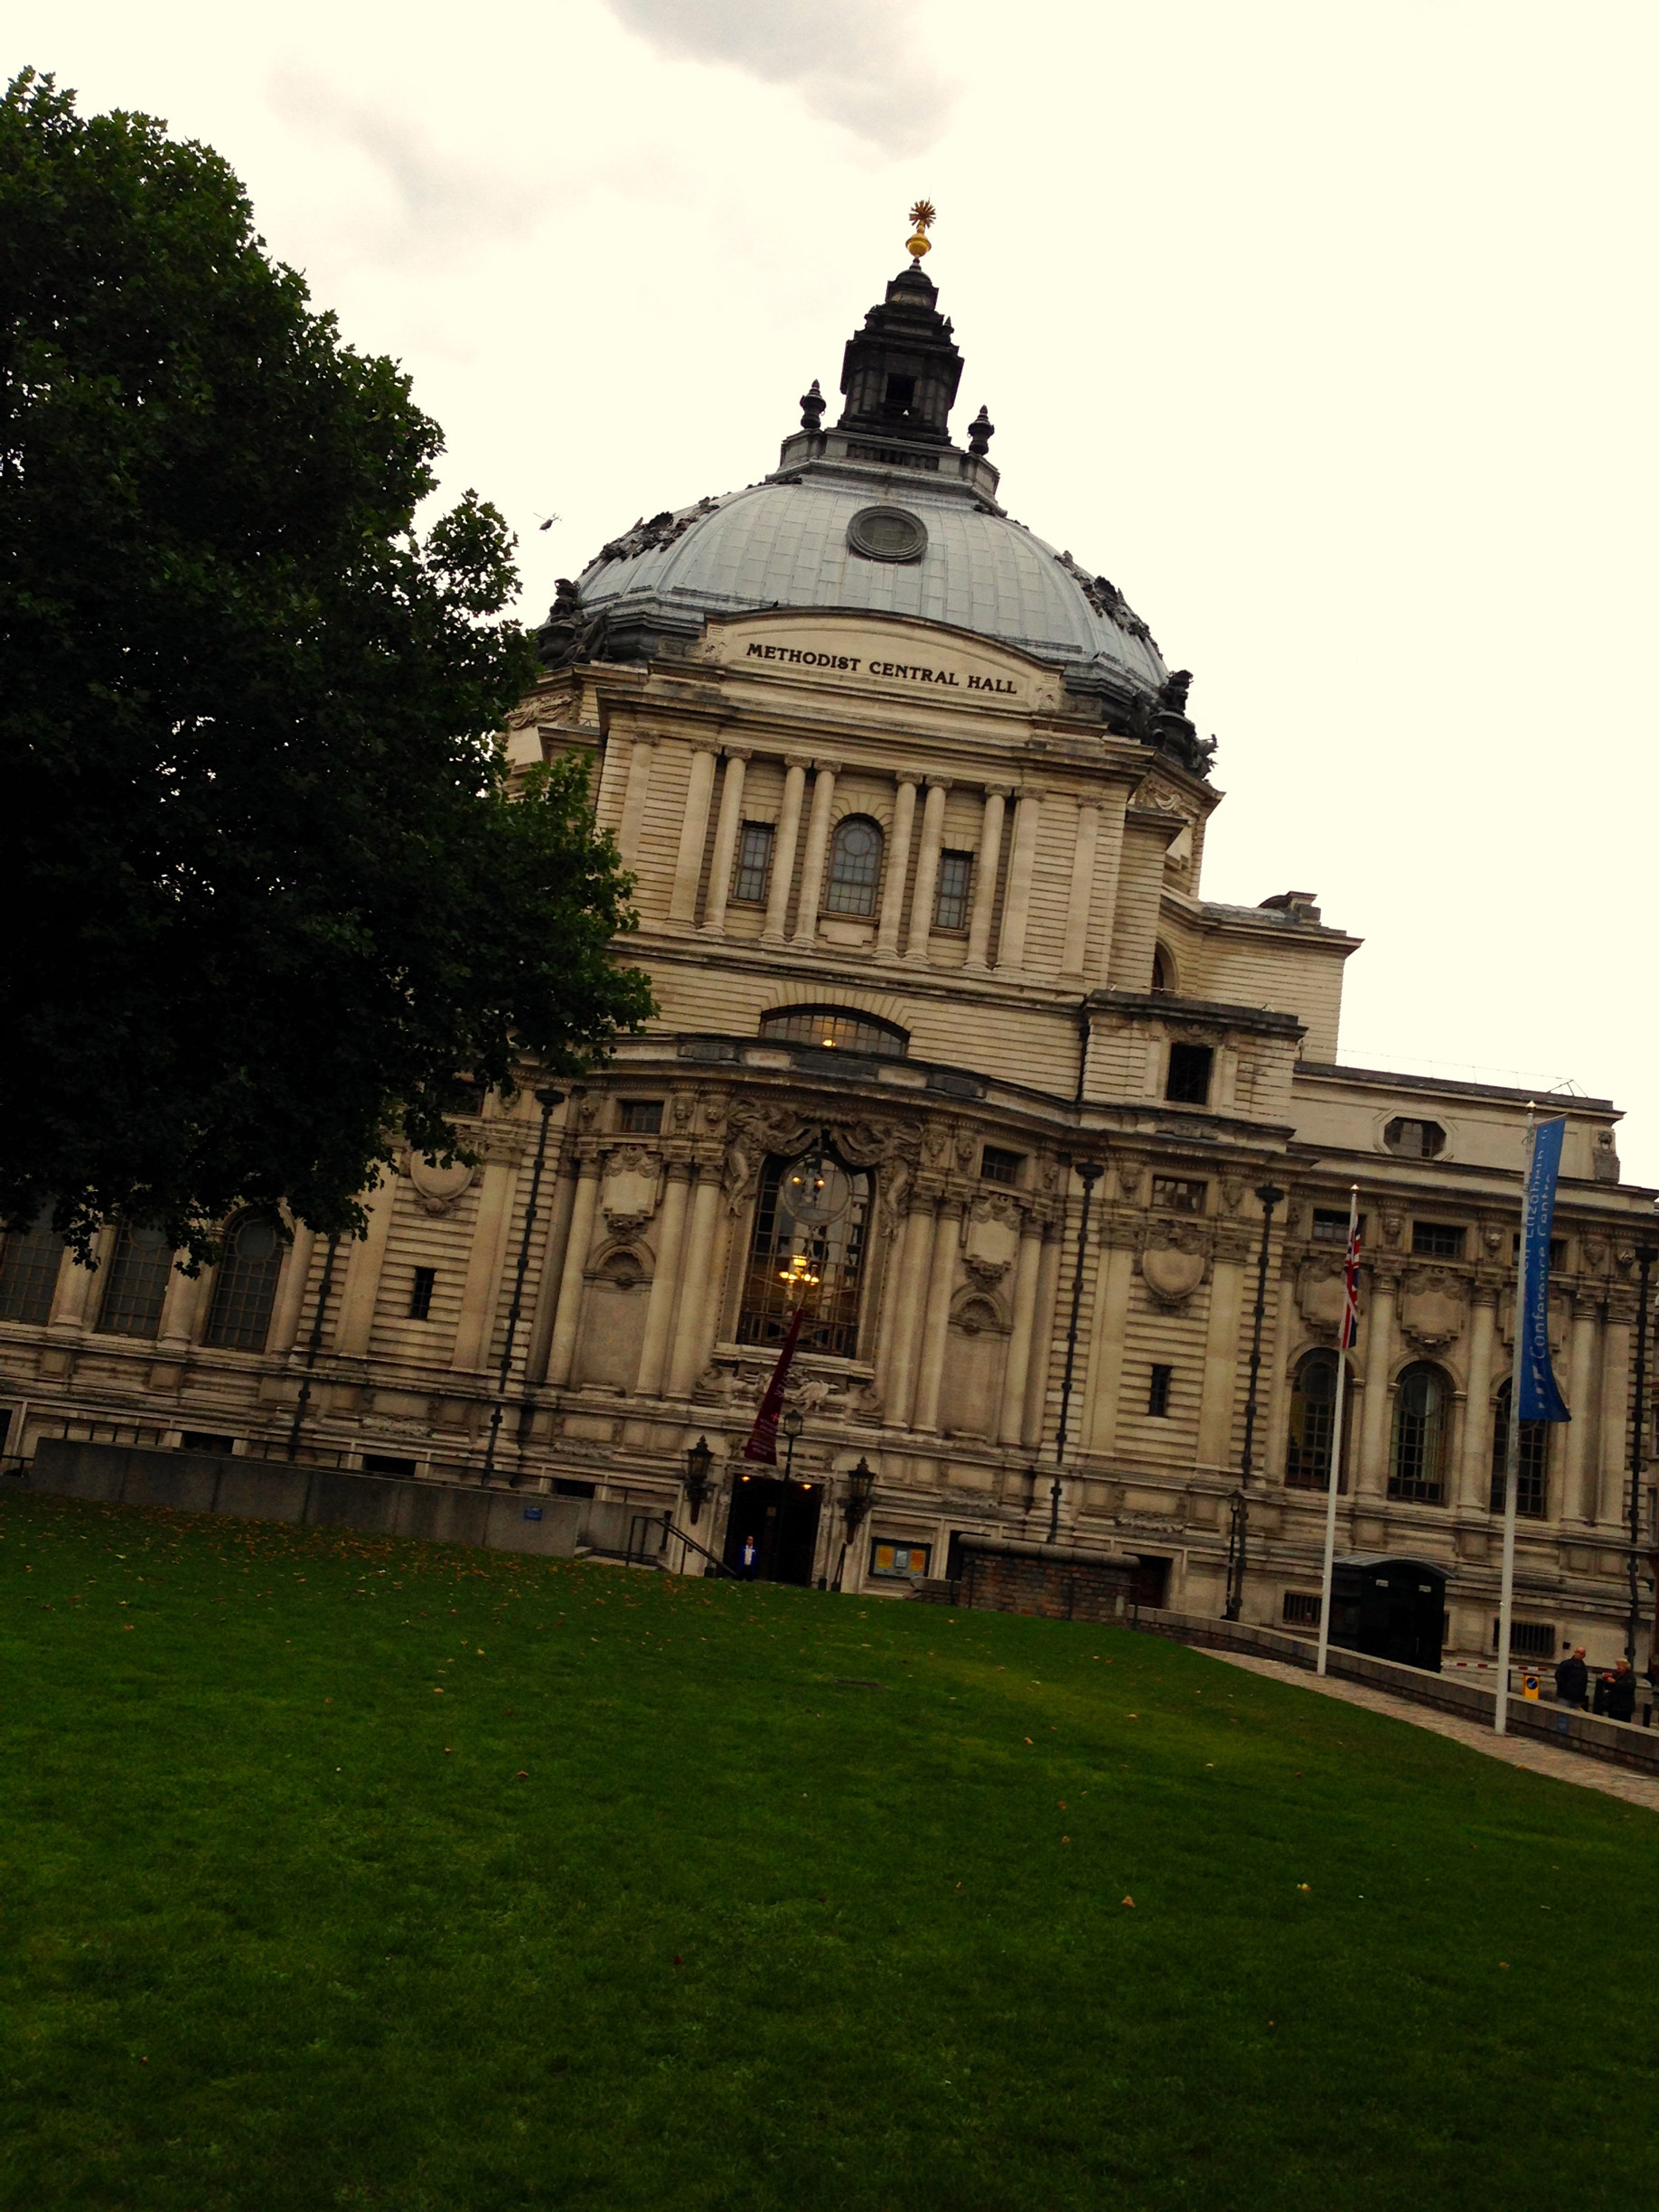 Methodist Central Hall, Westminster